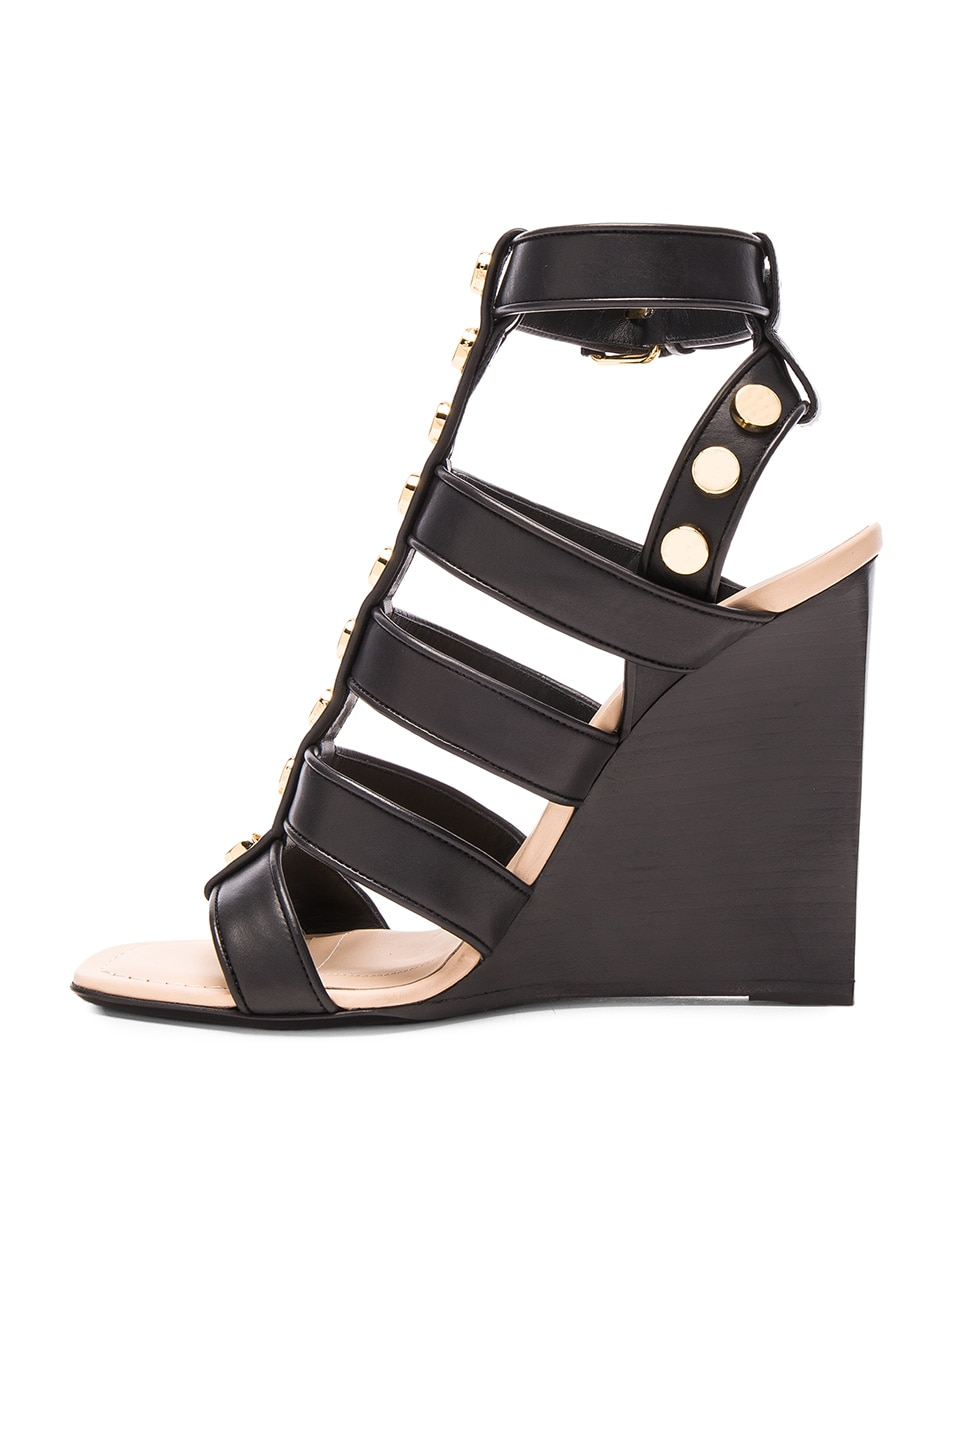 Image 5 of Balenciaga Studded Leather Wedge Sandals in Black